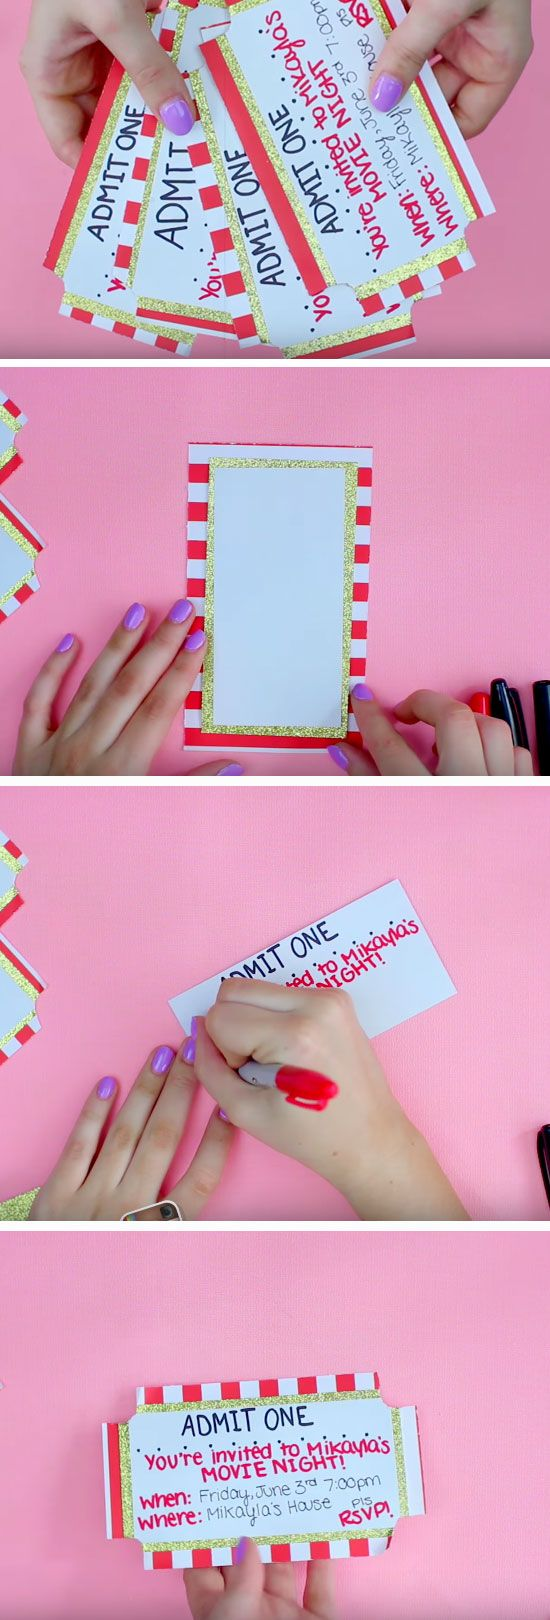 19 Diy Movie Night Ideas For Teens Admit One Movie Party And Movie Night Invitations